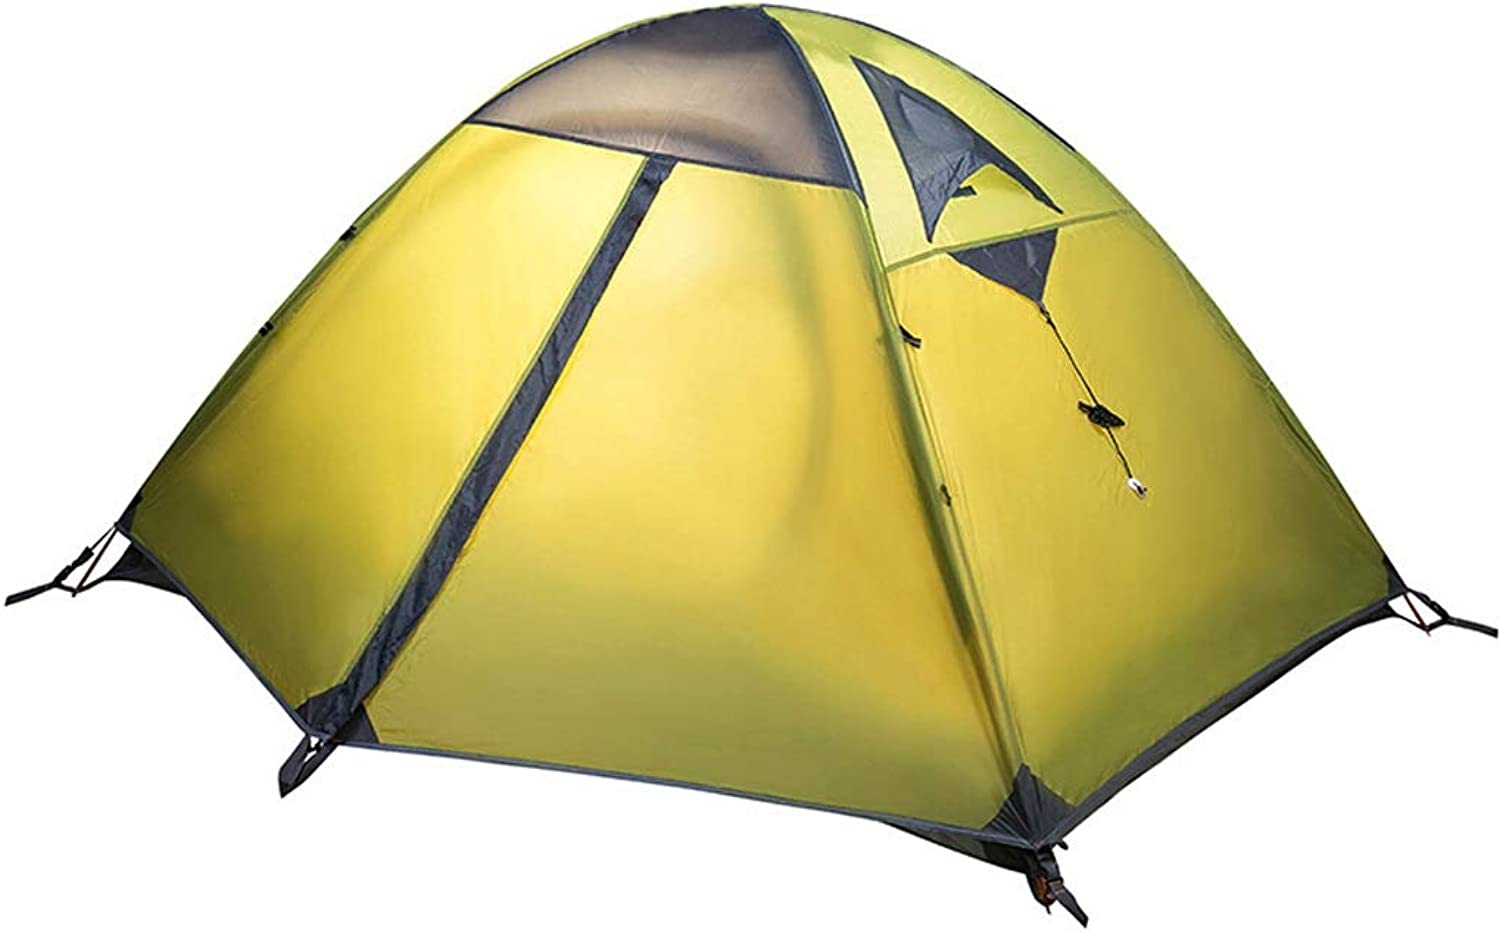 WANGXIAOLIN Tent Camping Windproof and Rainproof Aluminum Pole Double Double Tent (color   Green)